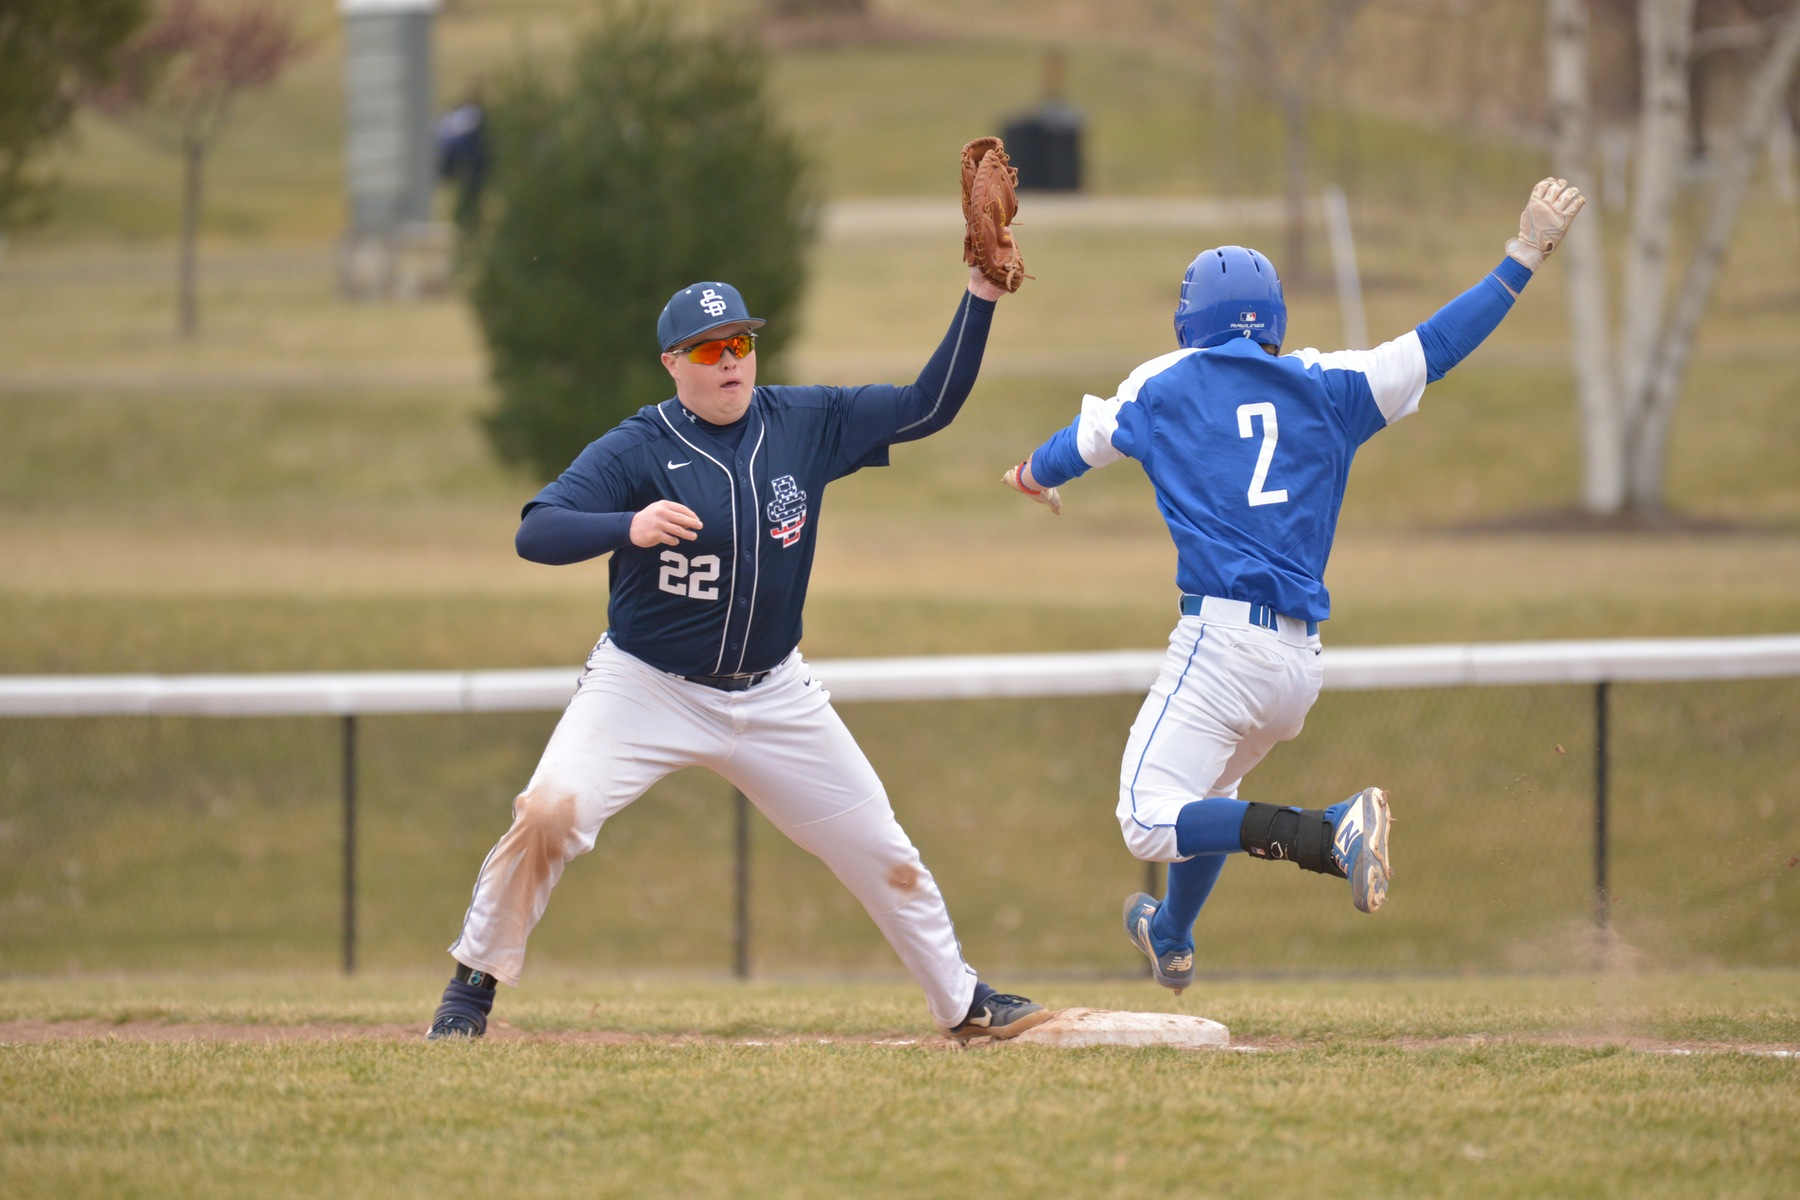 Behrend Basebal Heads to Alfred State Saturday in AMCC Action